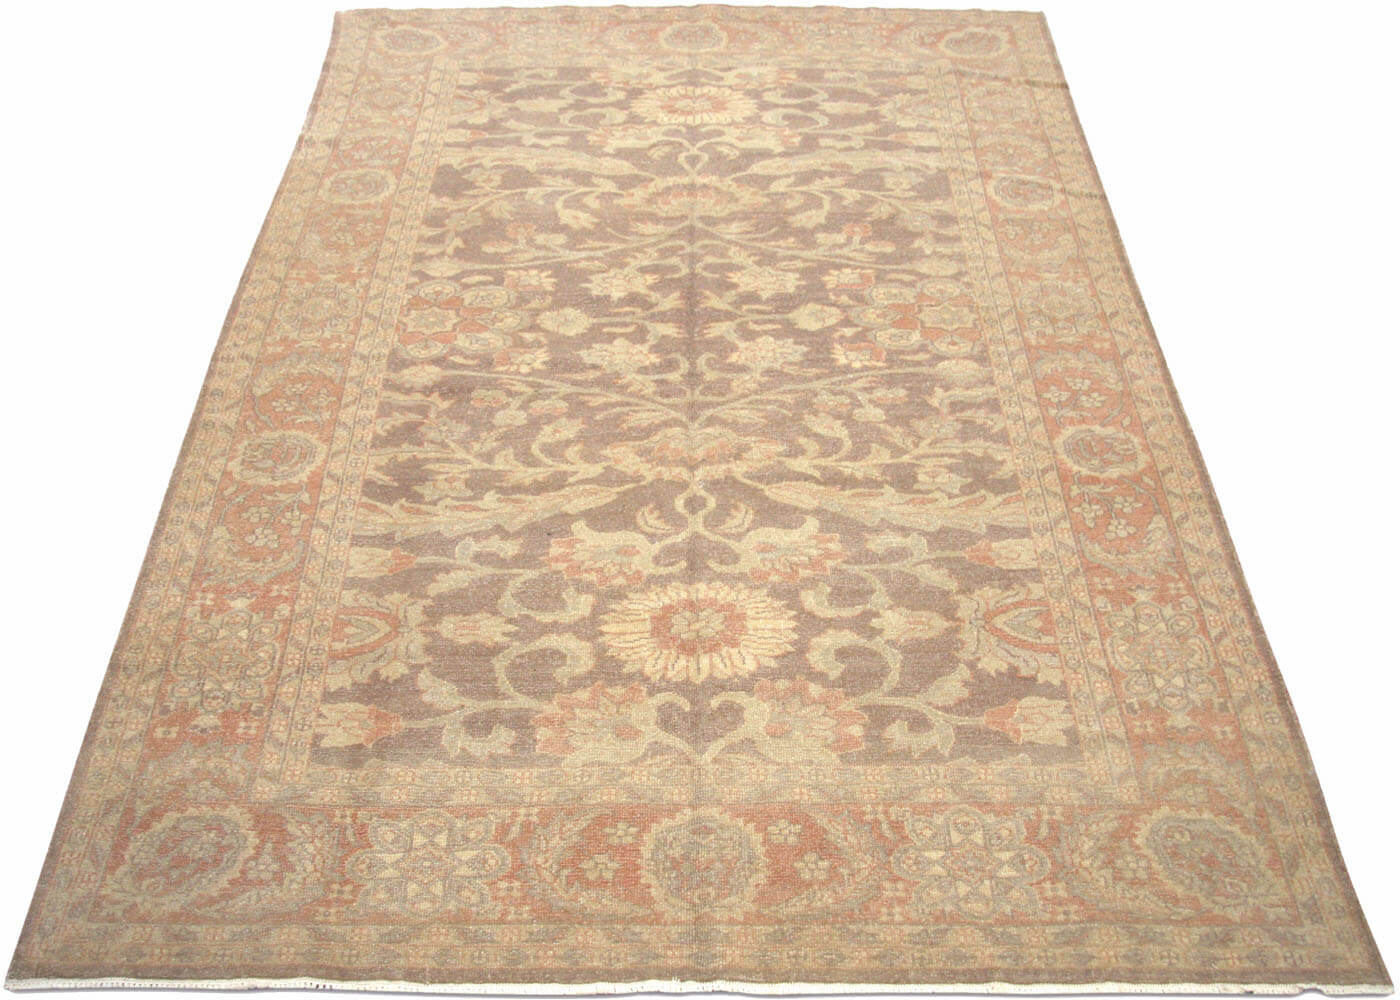 Recently Woven Egyptian Sultanabad Rug - 6' x 9'